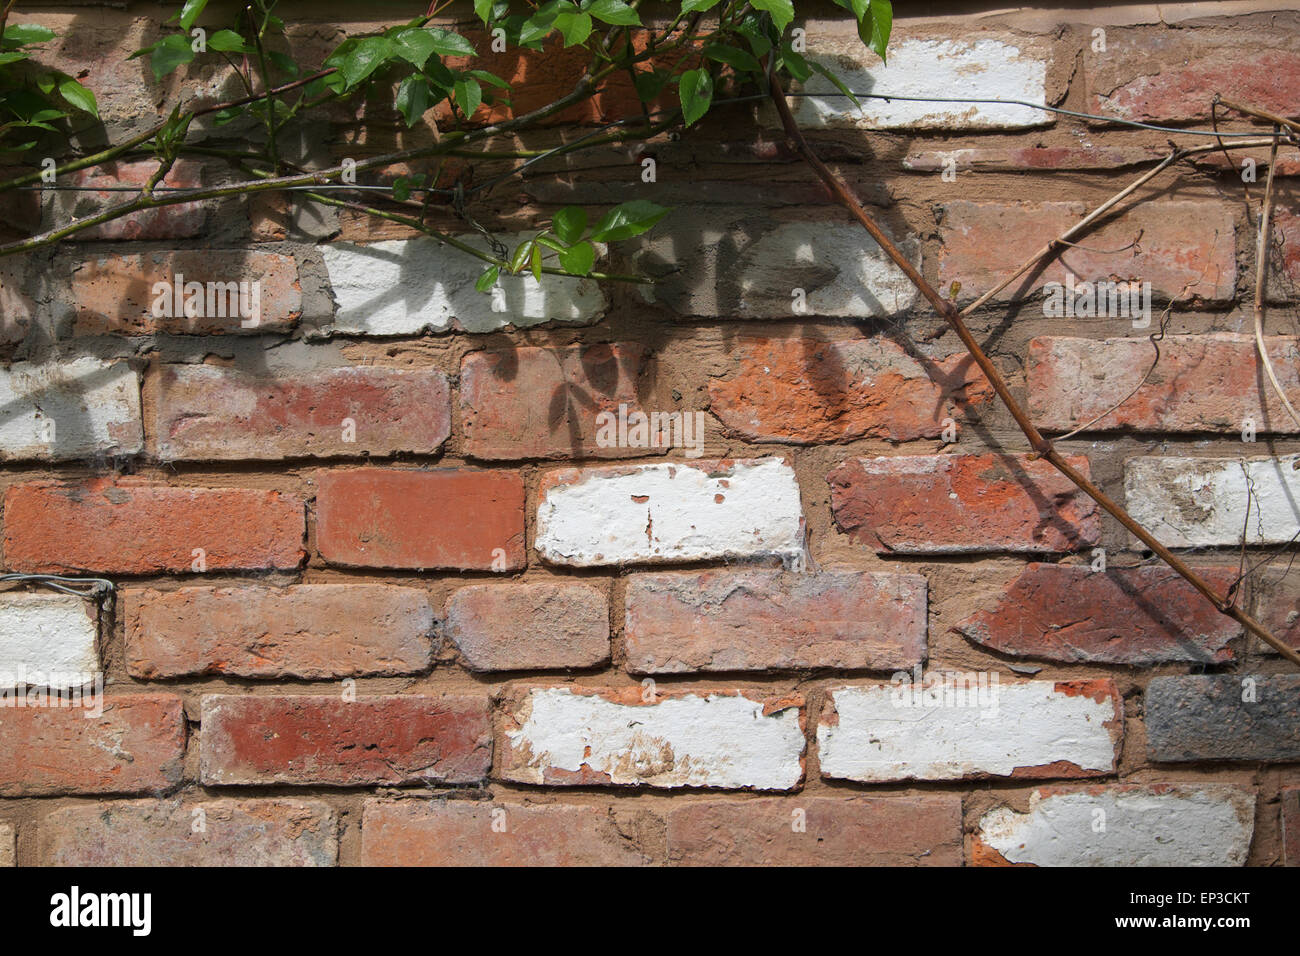 Recycled Used Old Bricks Used To Build A Garden Wall   Stock Image